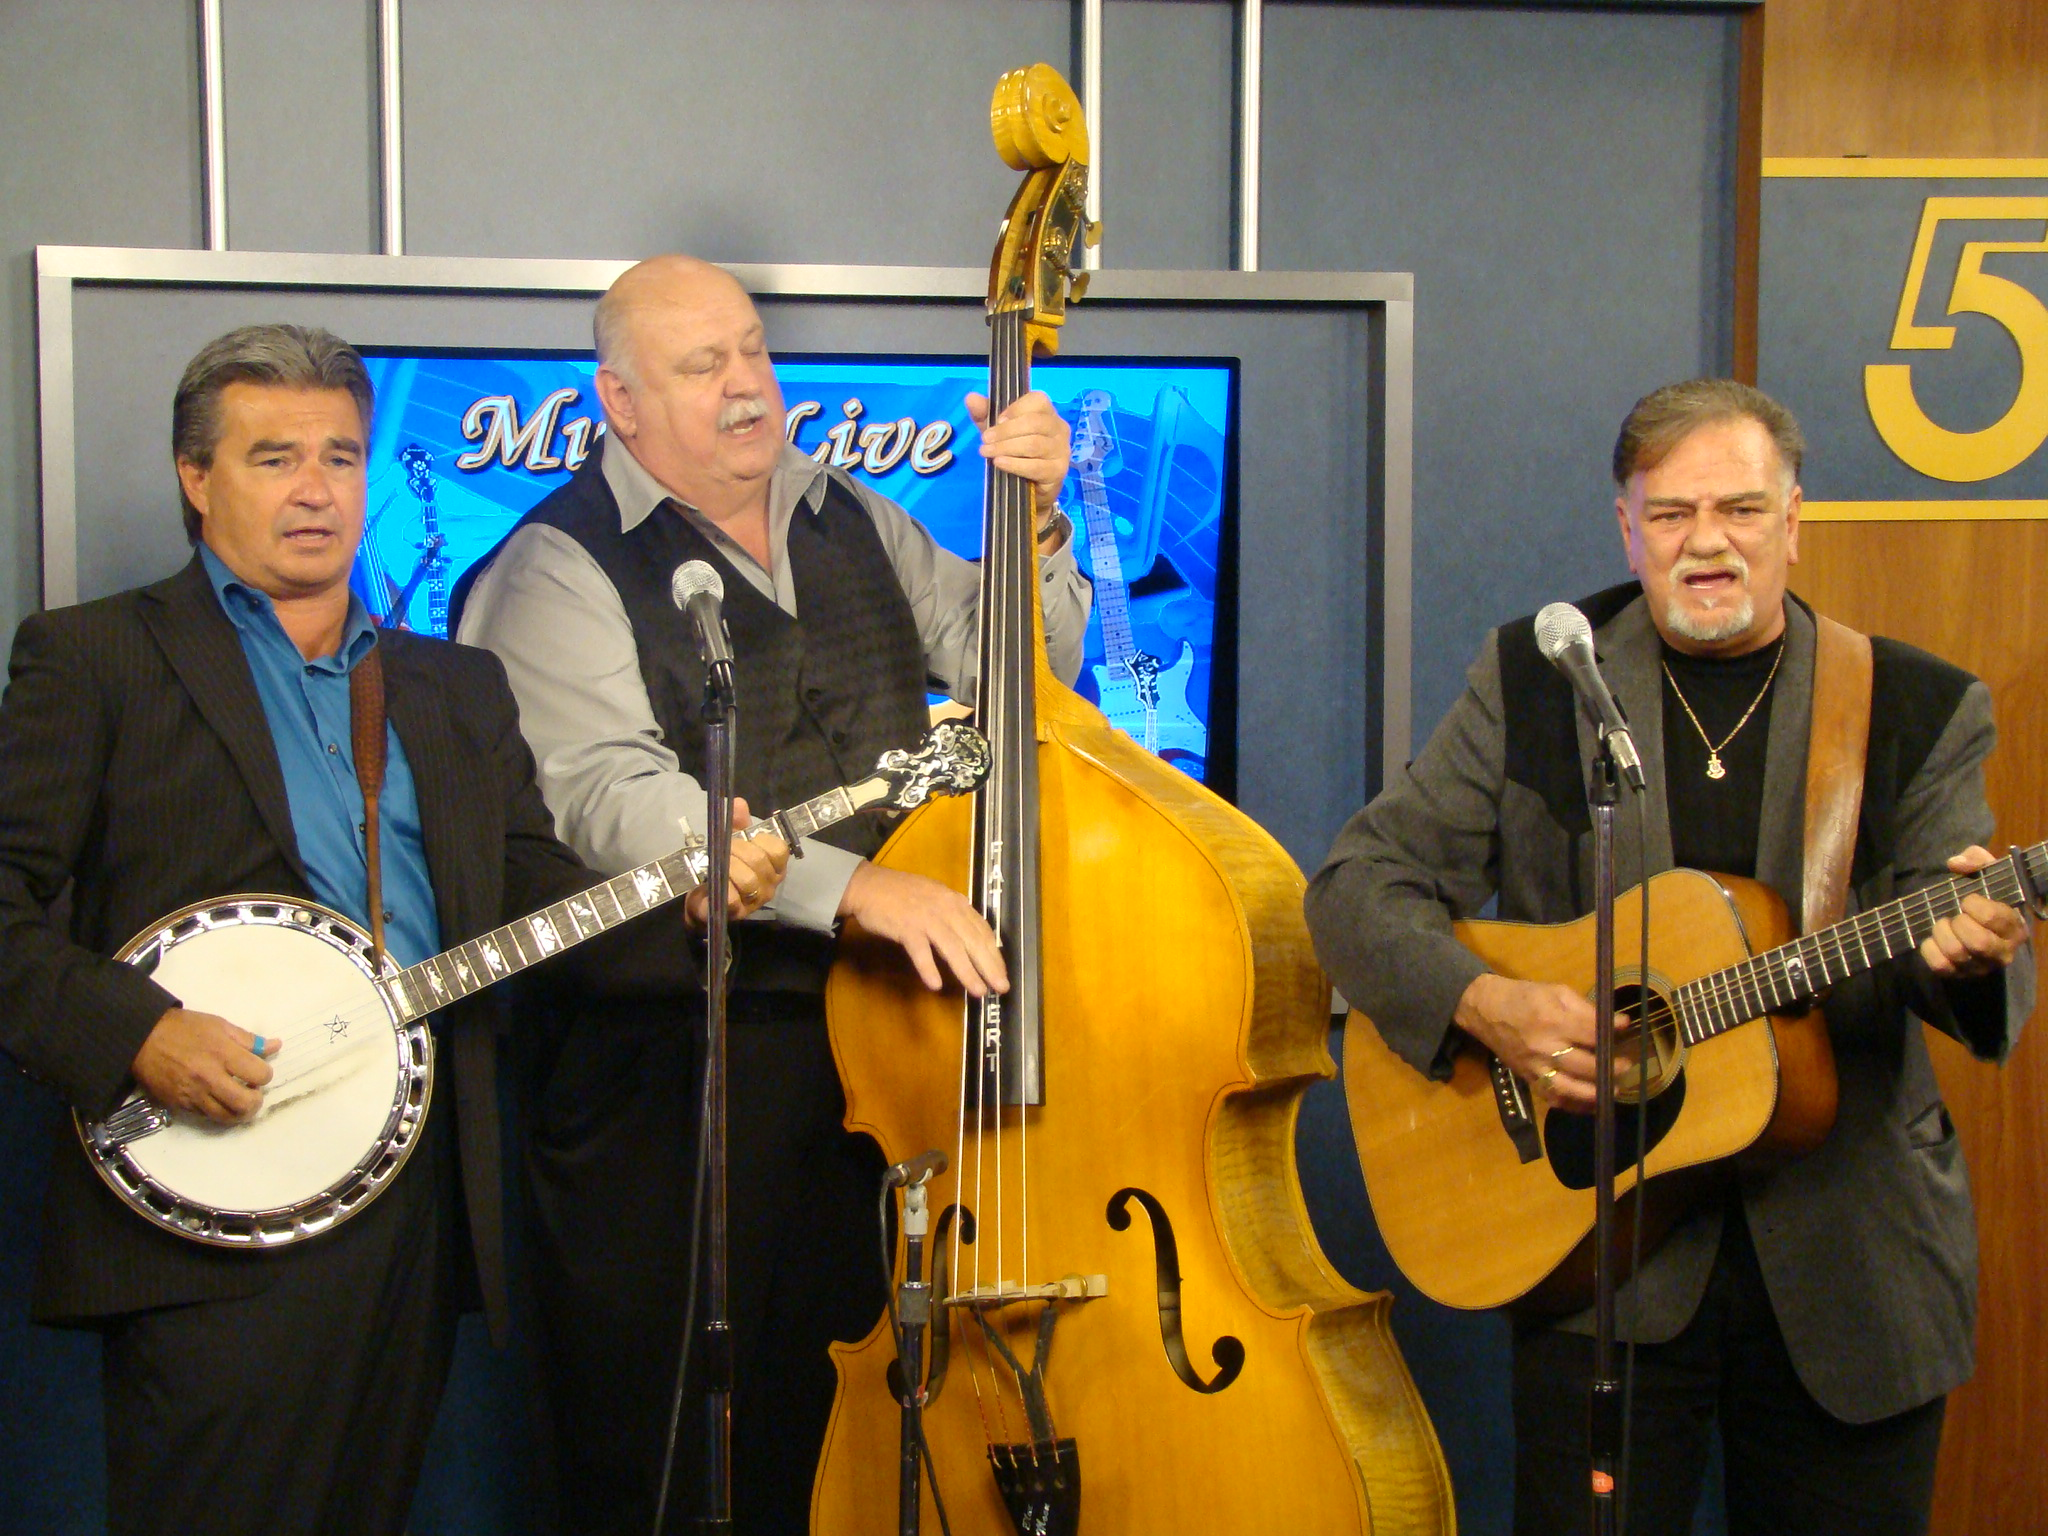 VW_Boys_on_WCYB_TV5_Noon_SHow,_Bristol,_VA_8-19-11_34.JPG